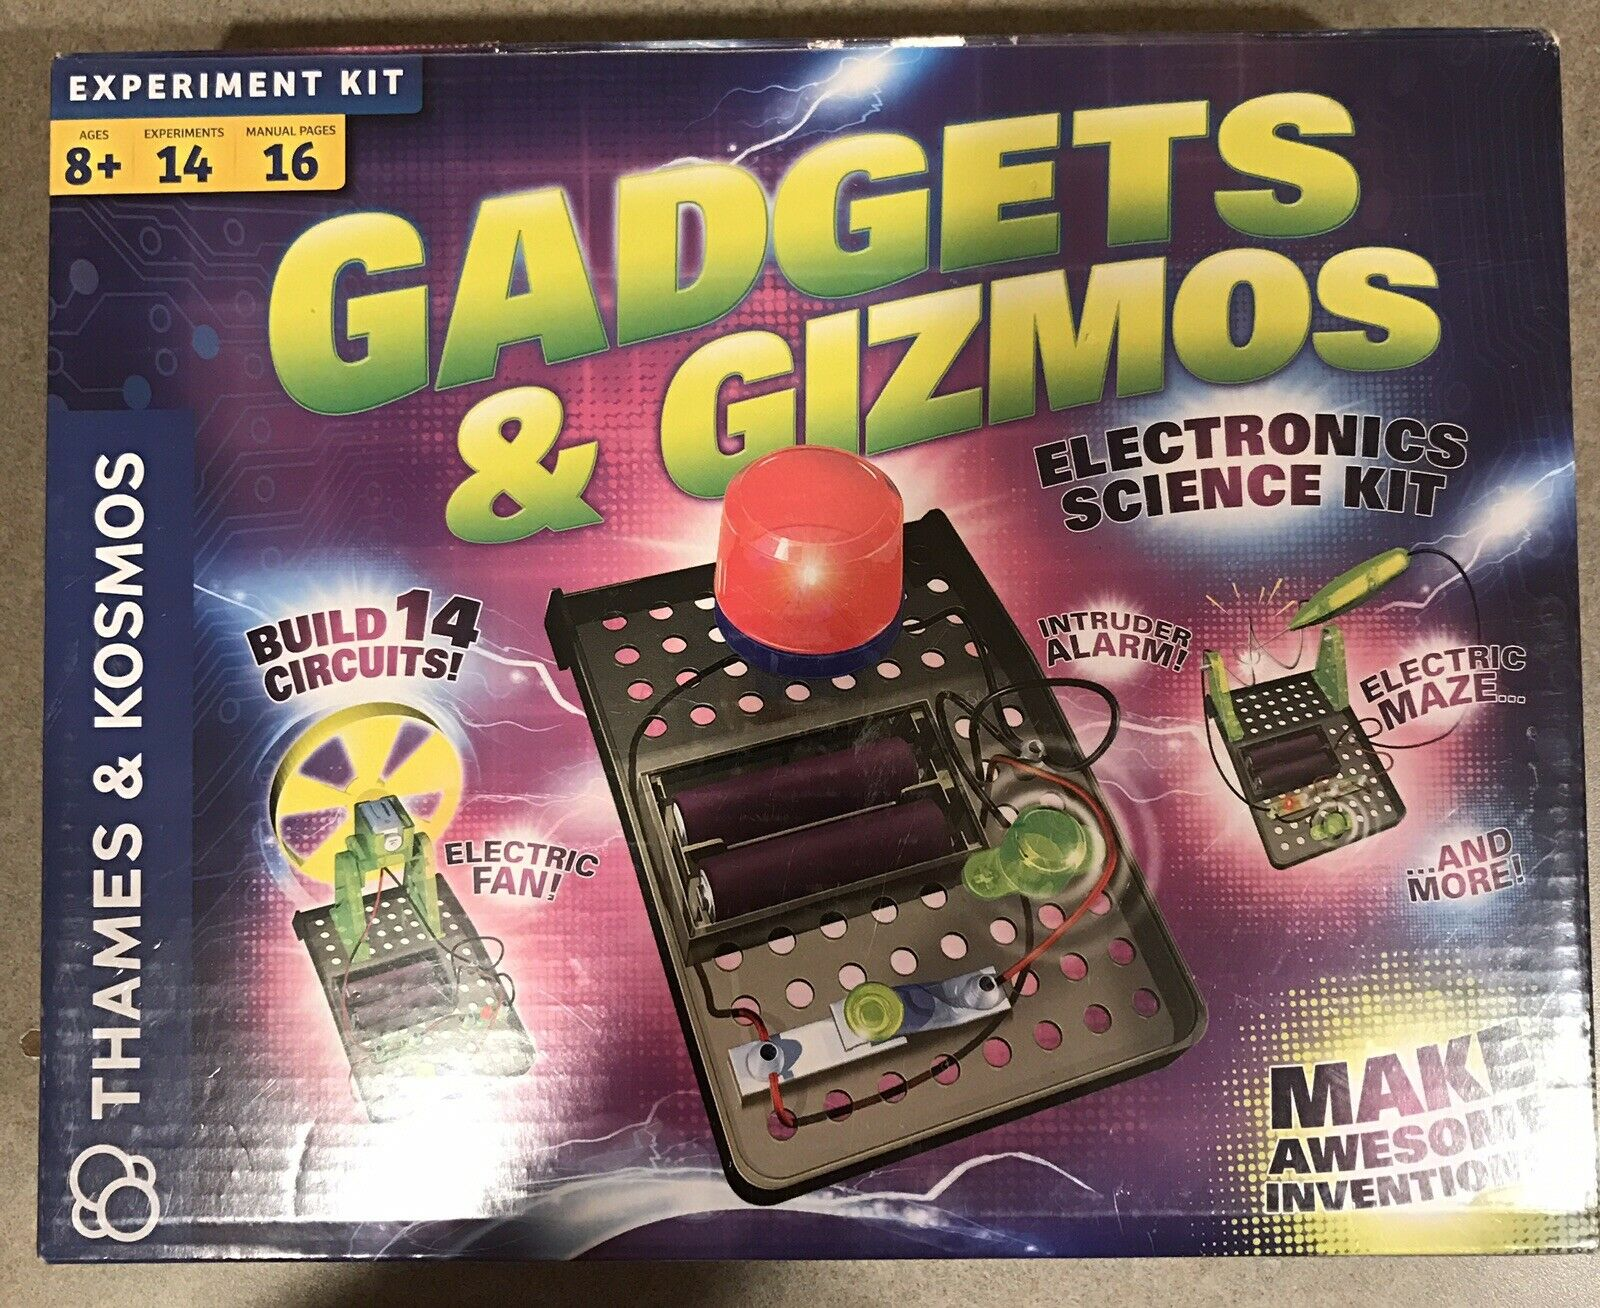 Gadgets & Gizmos Electronics Science Kit - NEW  SEALED